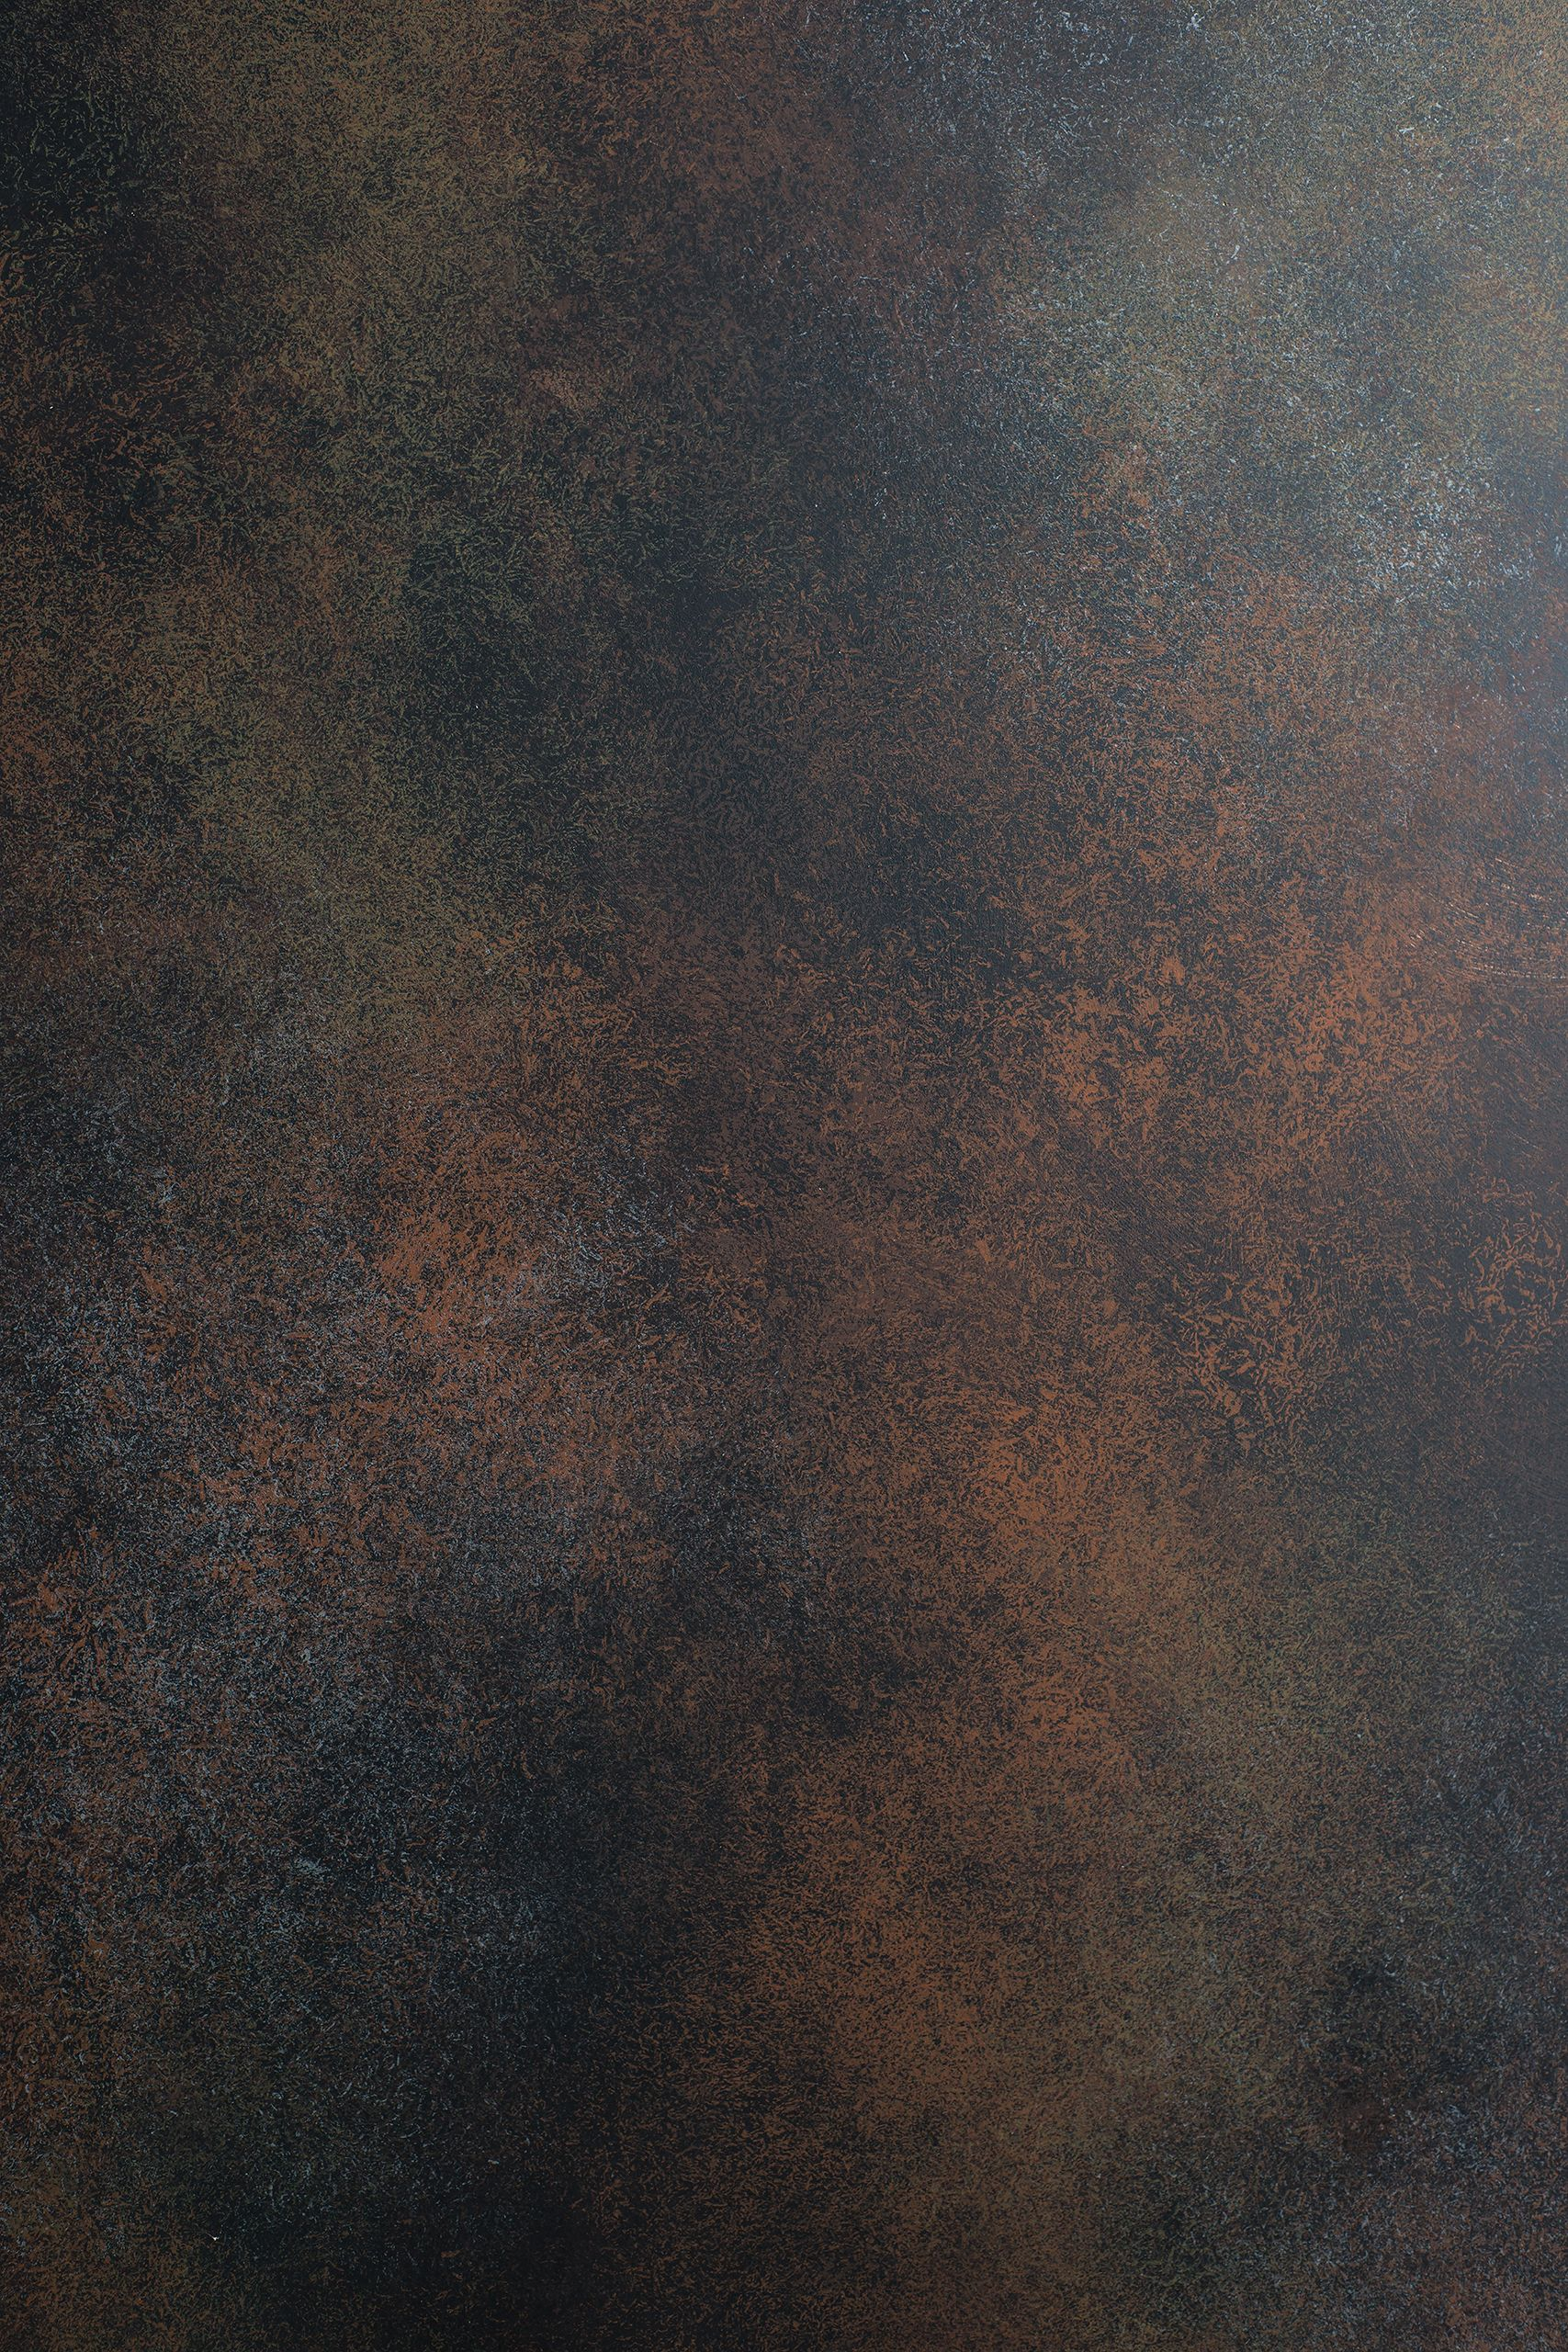 A Dark Brown Backdrop With Small Specks Of Blue Grey Brown And Orange Colour Backdrops Fashion Black Background Wallpaper Food Photography Props Backgrounds